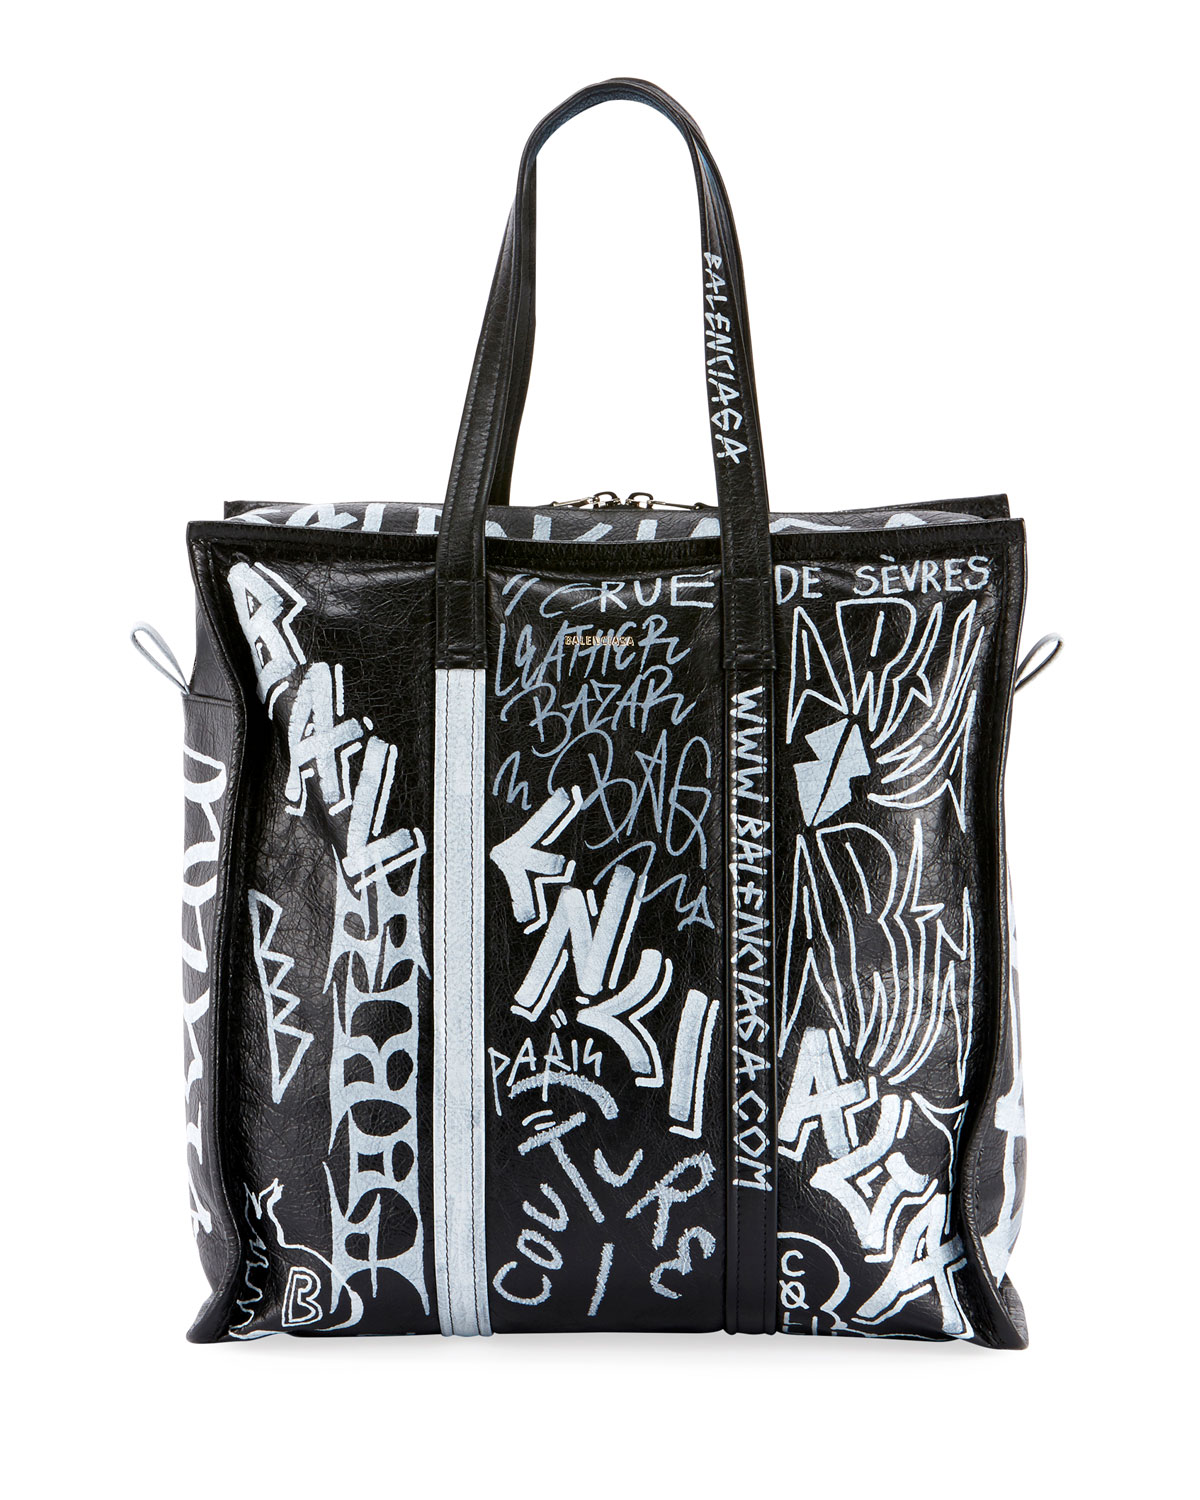 31f75e32cc Balenciaga Men's Bazar Medium Graffiti Leather Shopper Tote Bag ...